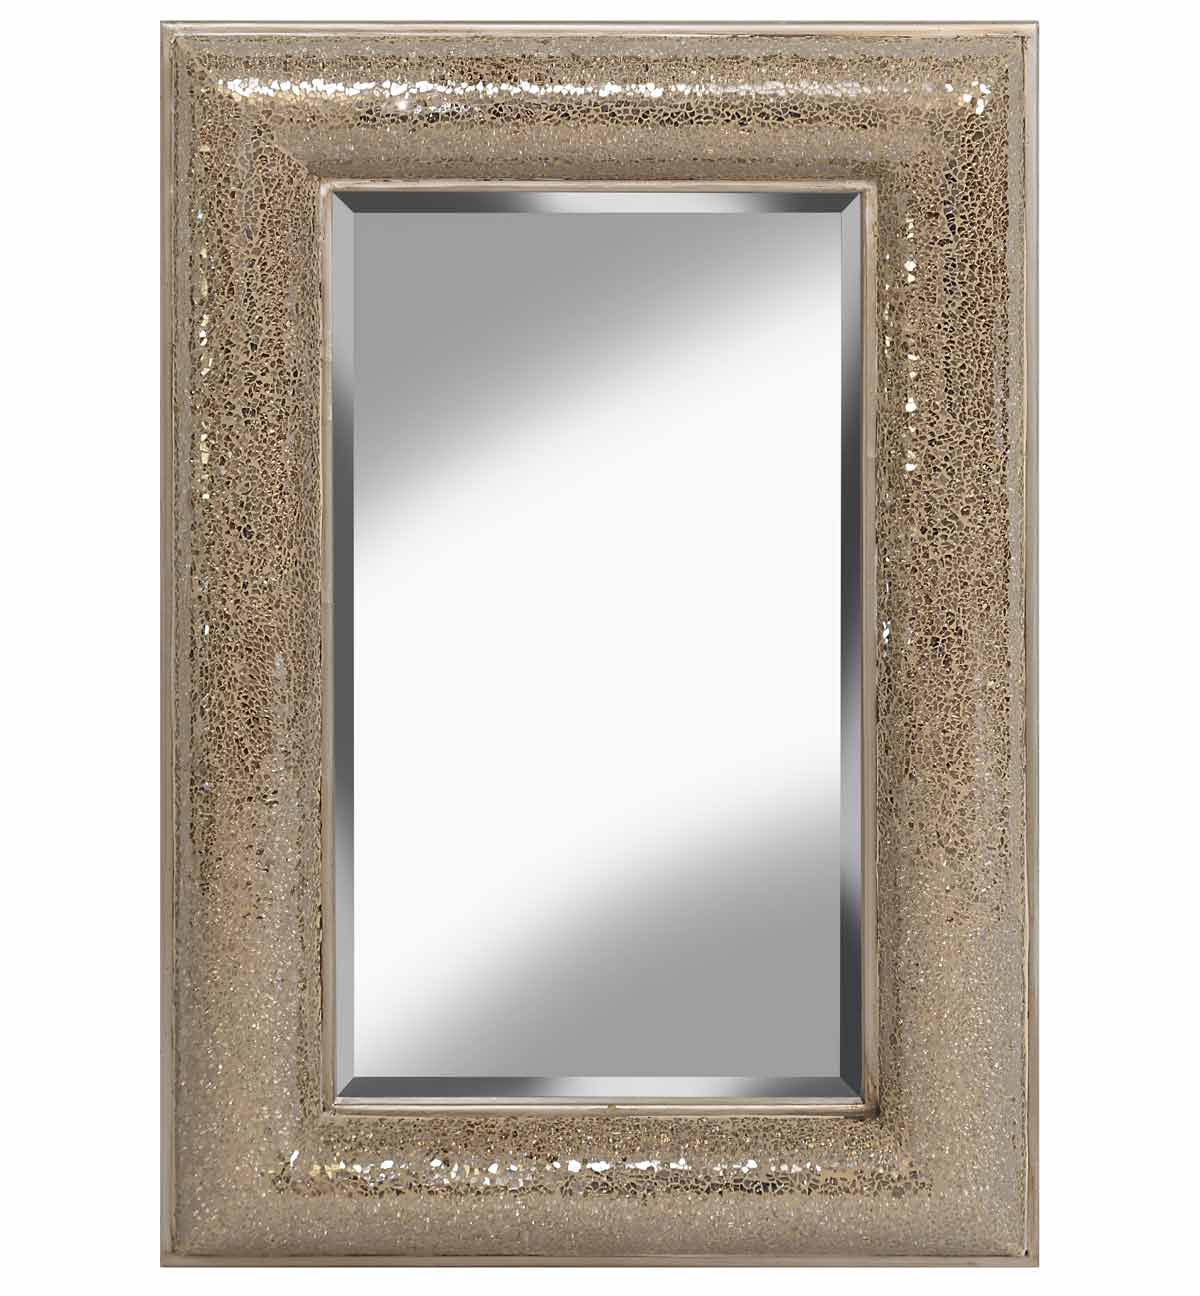 Rectangular Crushed Glass Mosaic Sparkle Bevelled Mirror In Champagne